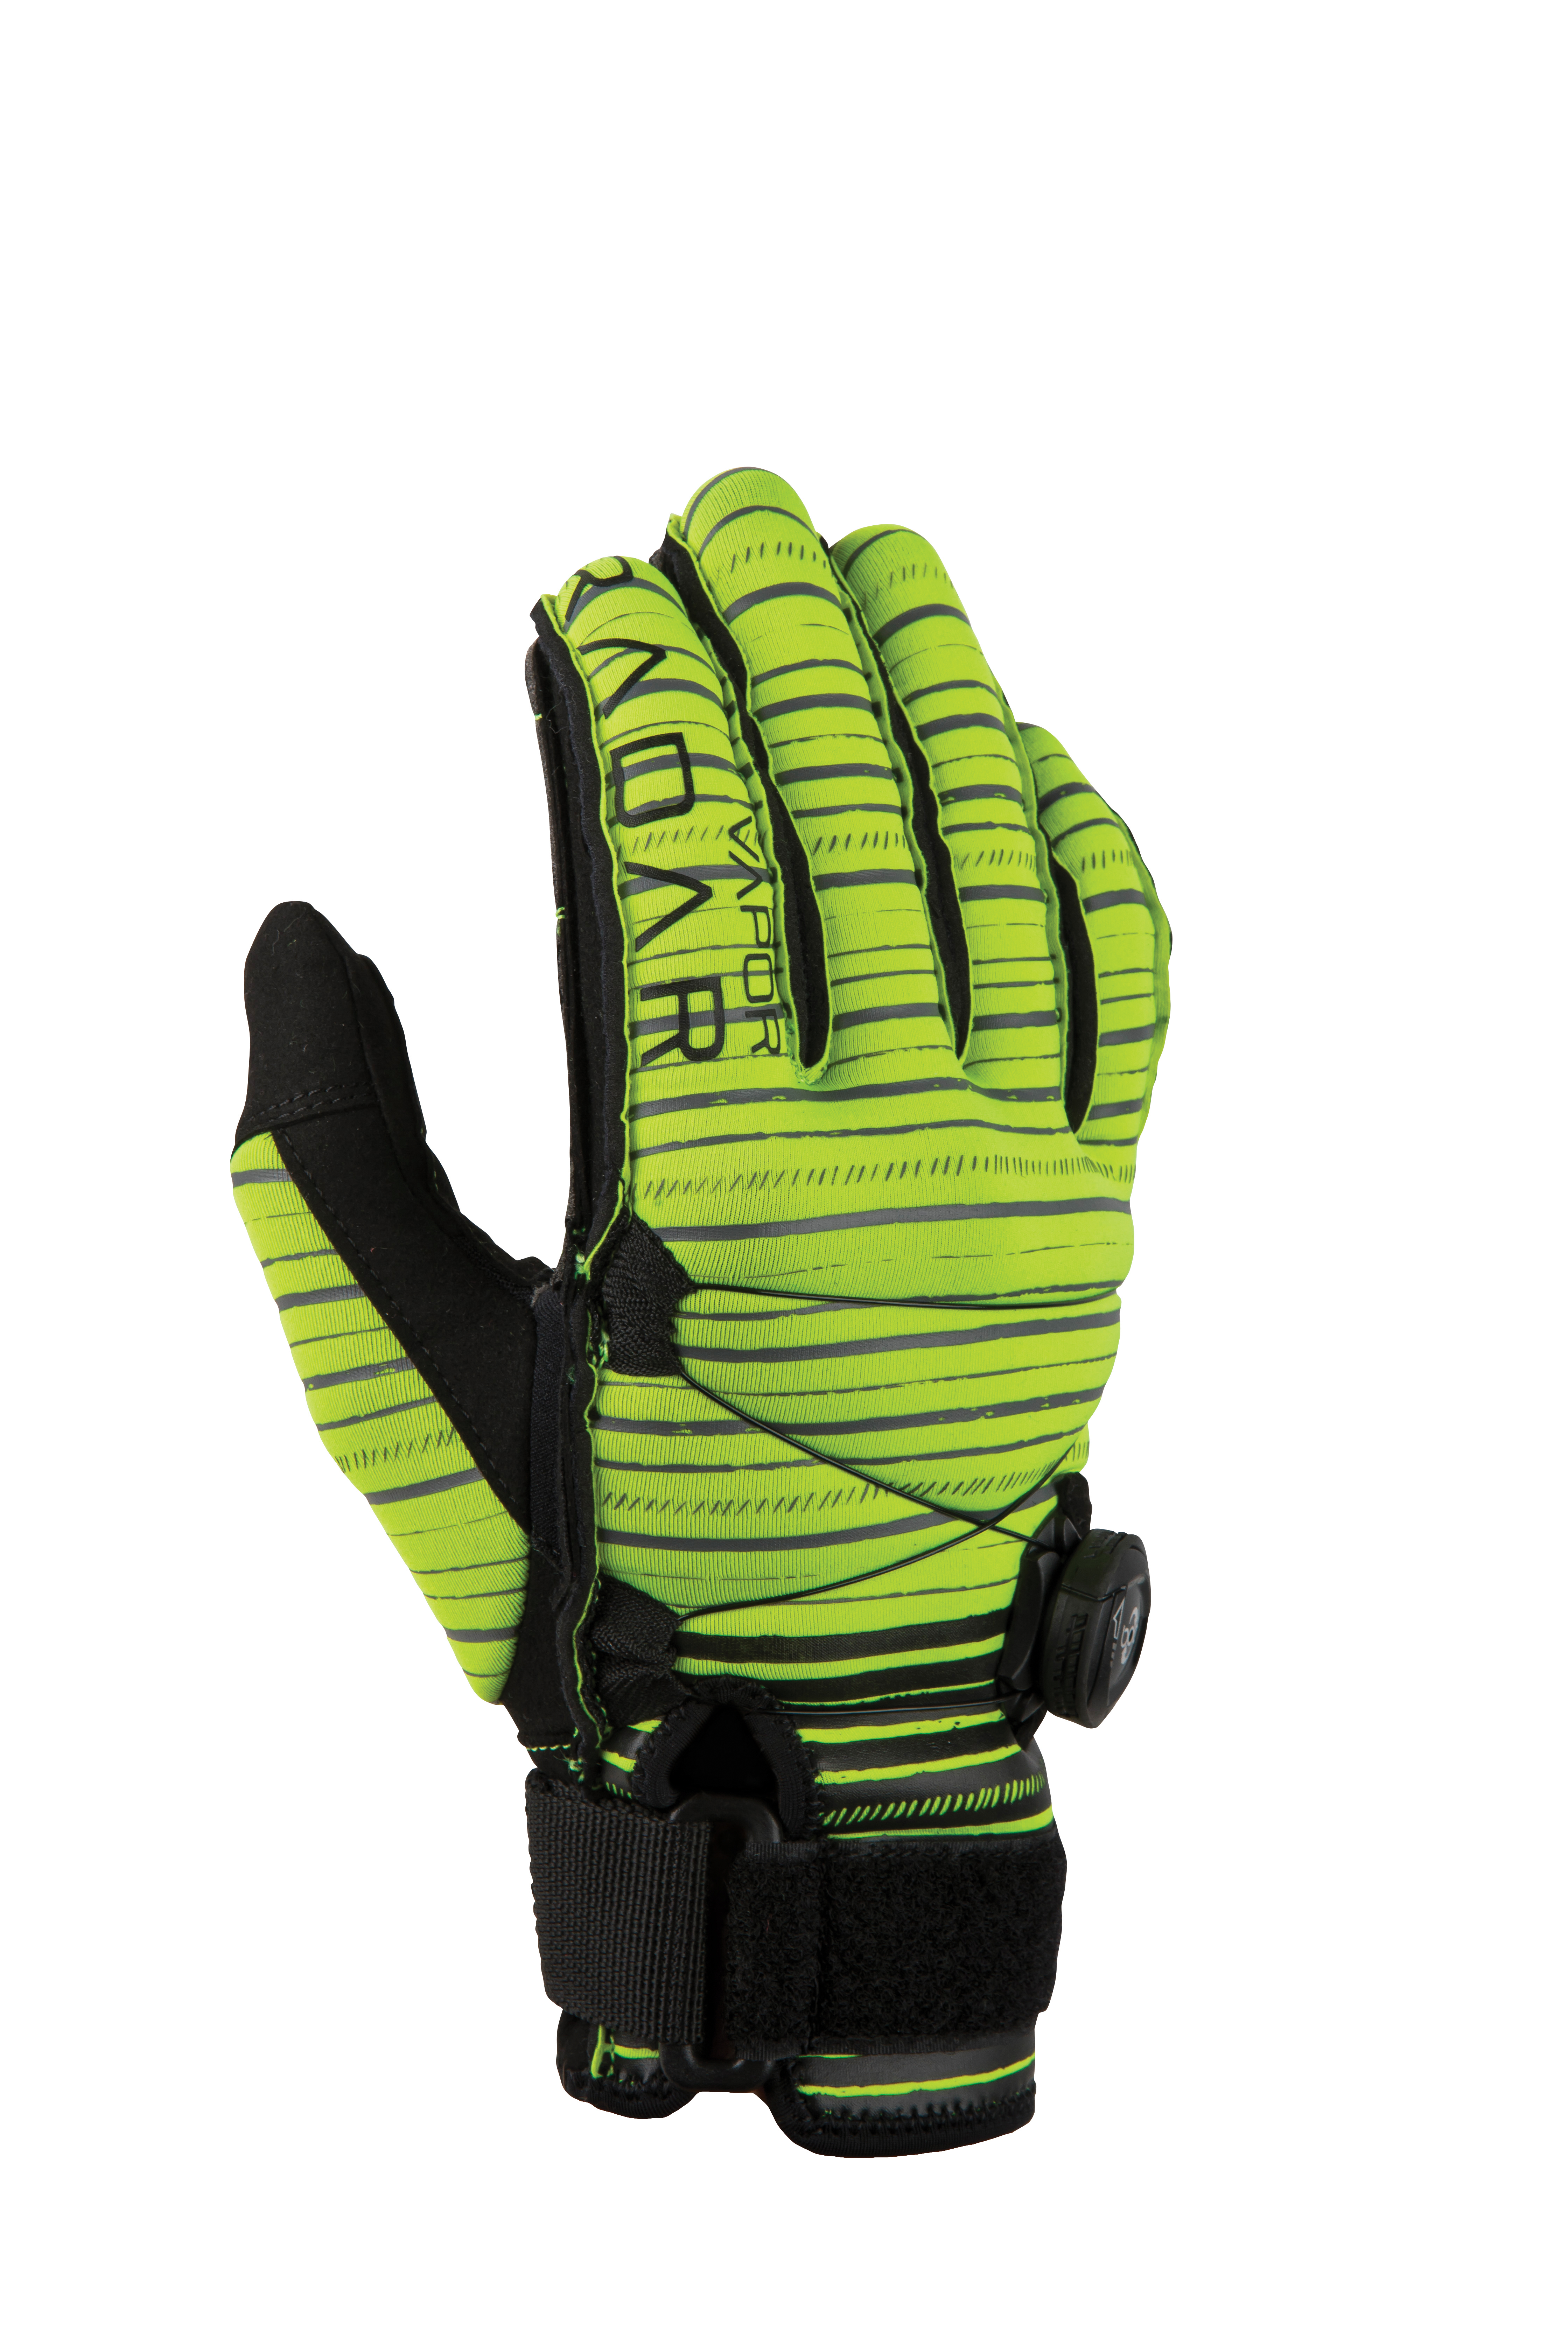 VAPOR A - BOA - INSIDE-OUT GLOVE RADAR 2018